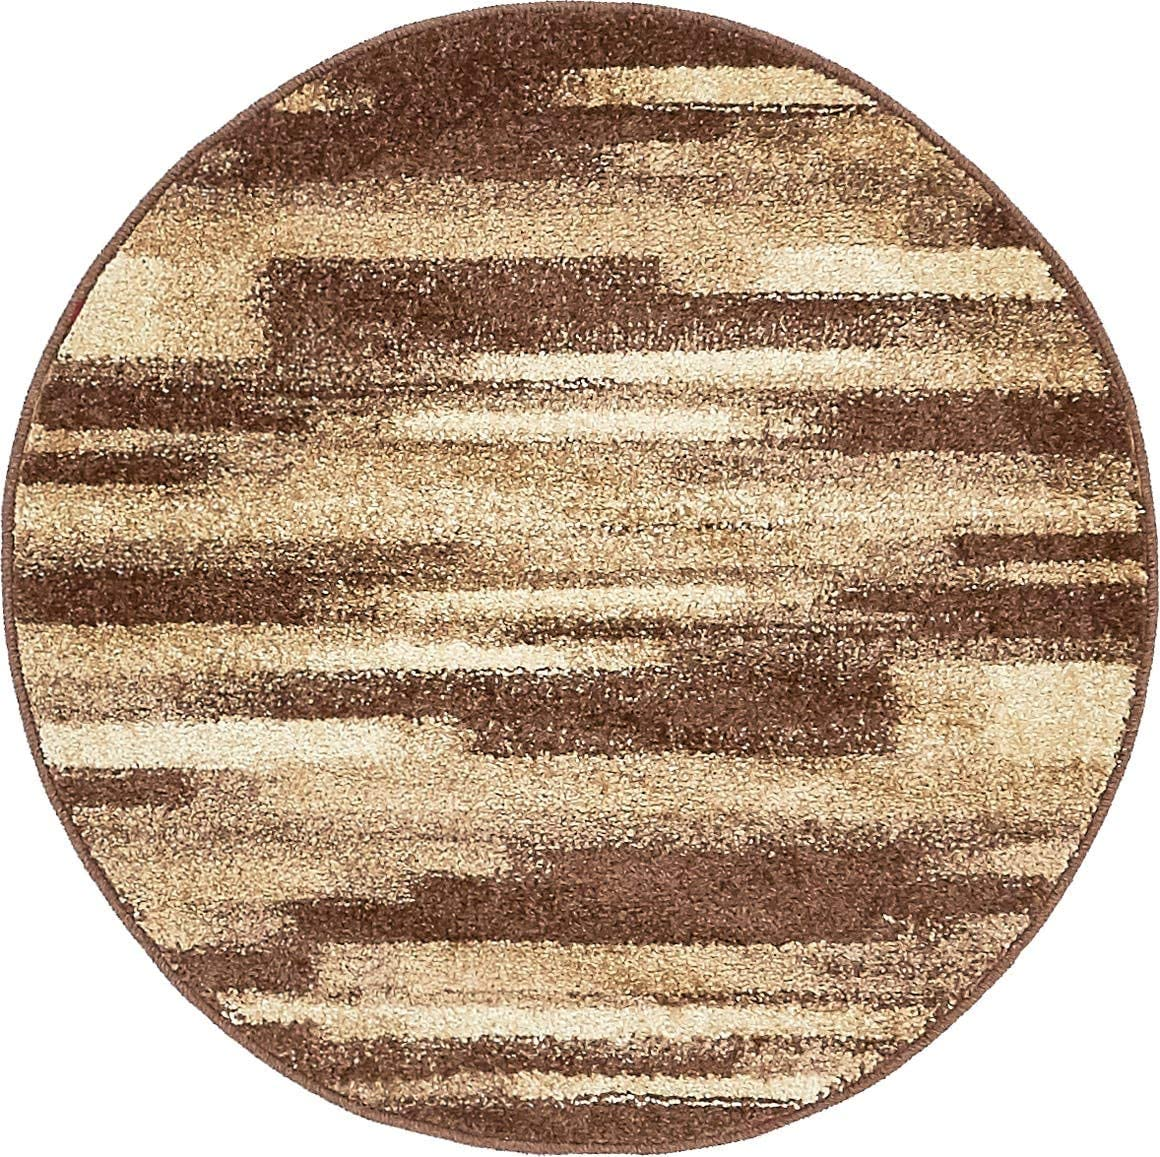 Unique Loom Autumn Collection Gradient Casual Warm Toned Brown Round Rug 3 3 x 3 3